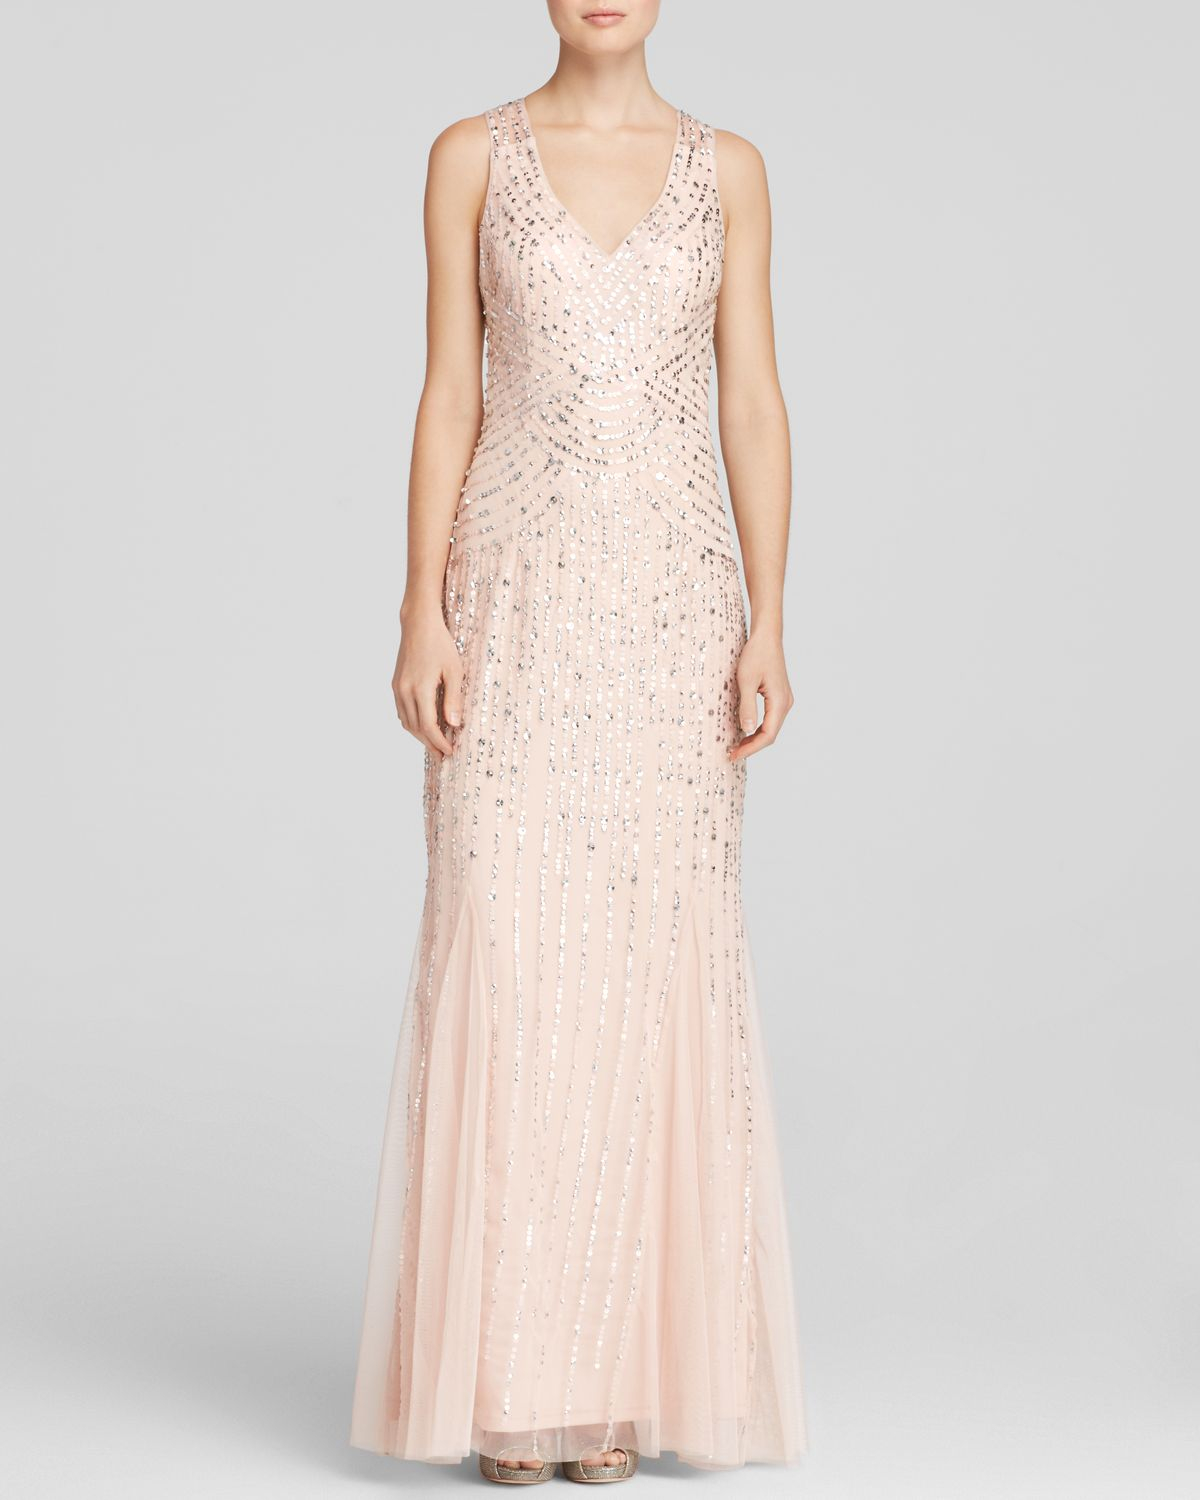 Lyst - Aidan Mattox Gown - Sleeveless V-neck Beaded Godet in Natural